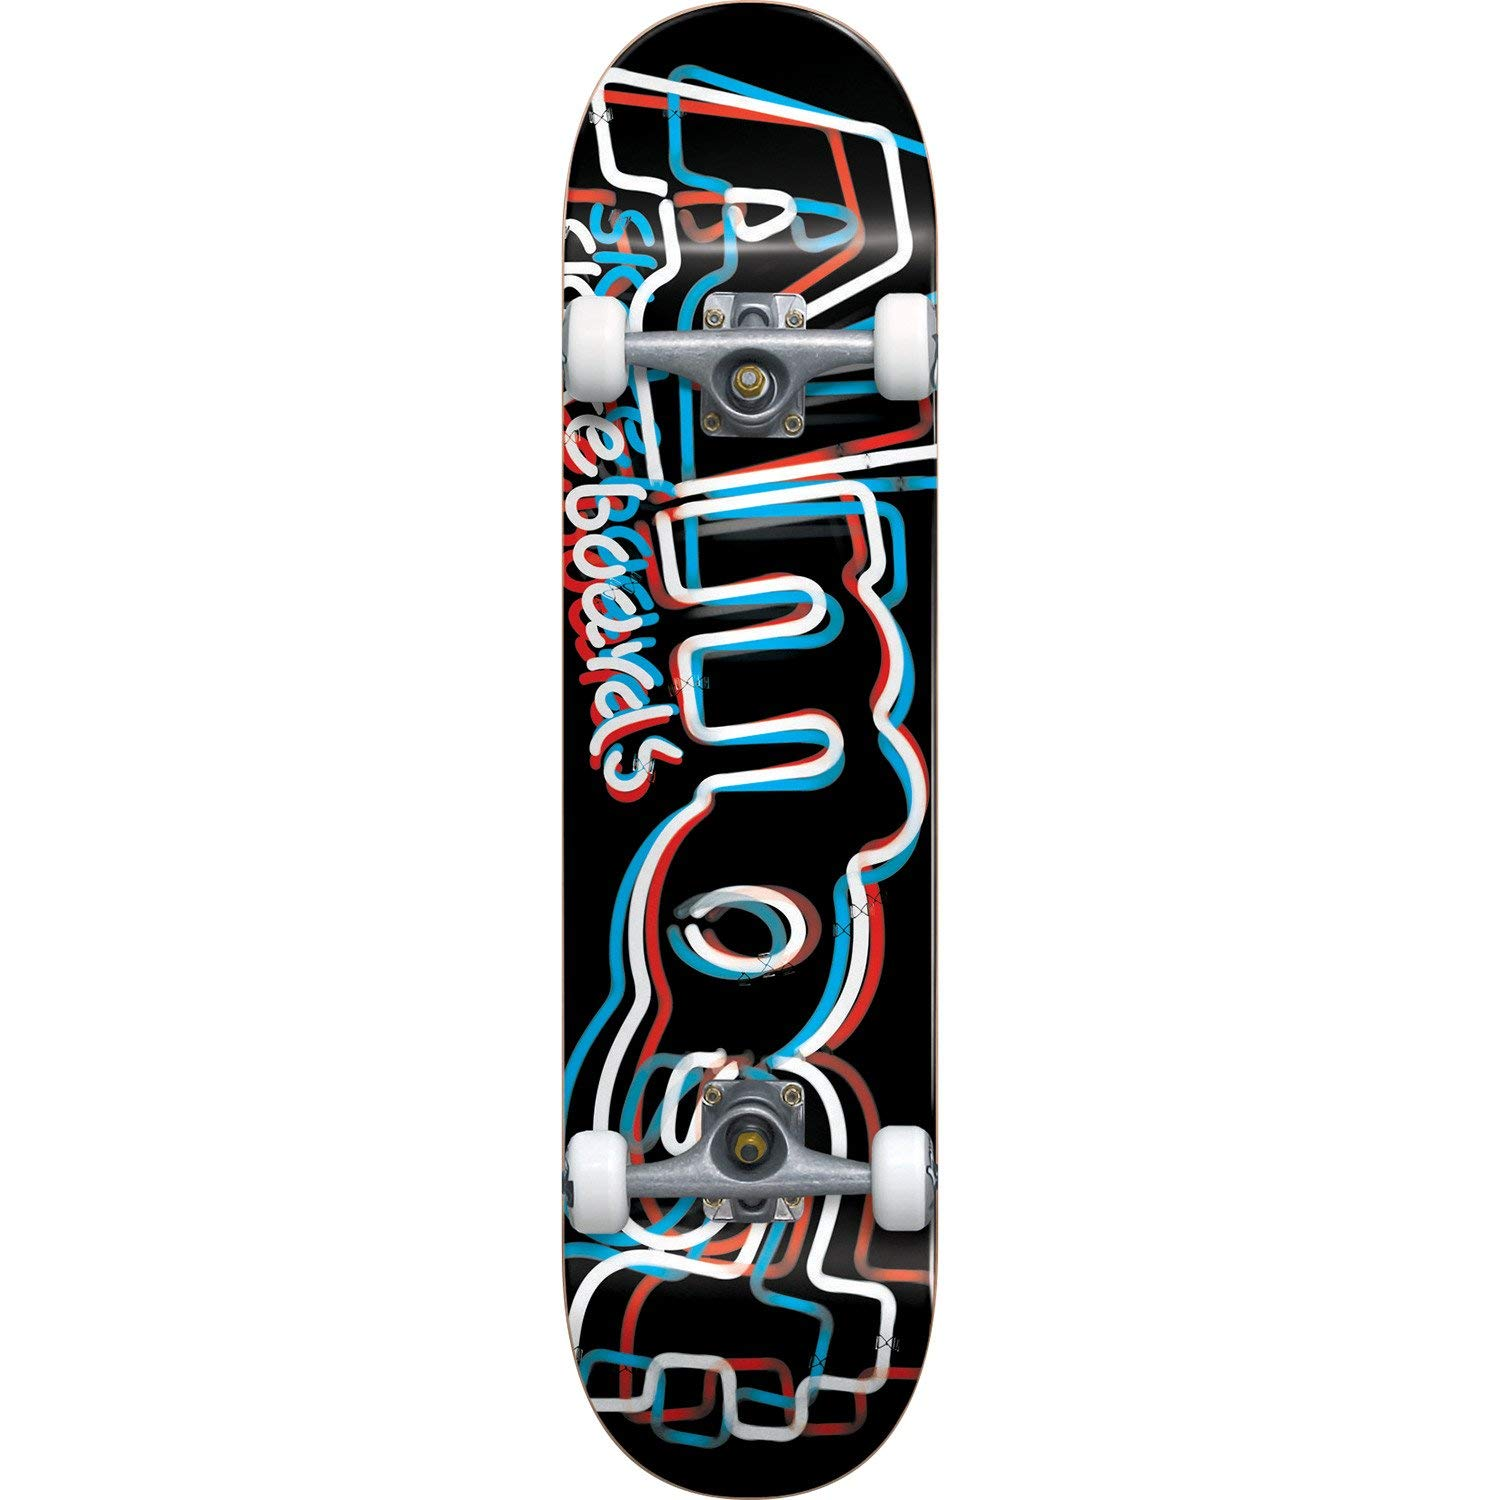 "Almost Skateboards Neon Black / Red / White / Blue Complete Skateboard - 8"" x 31.7"""